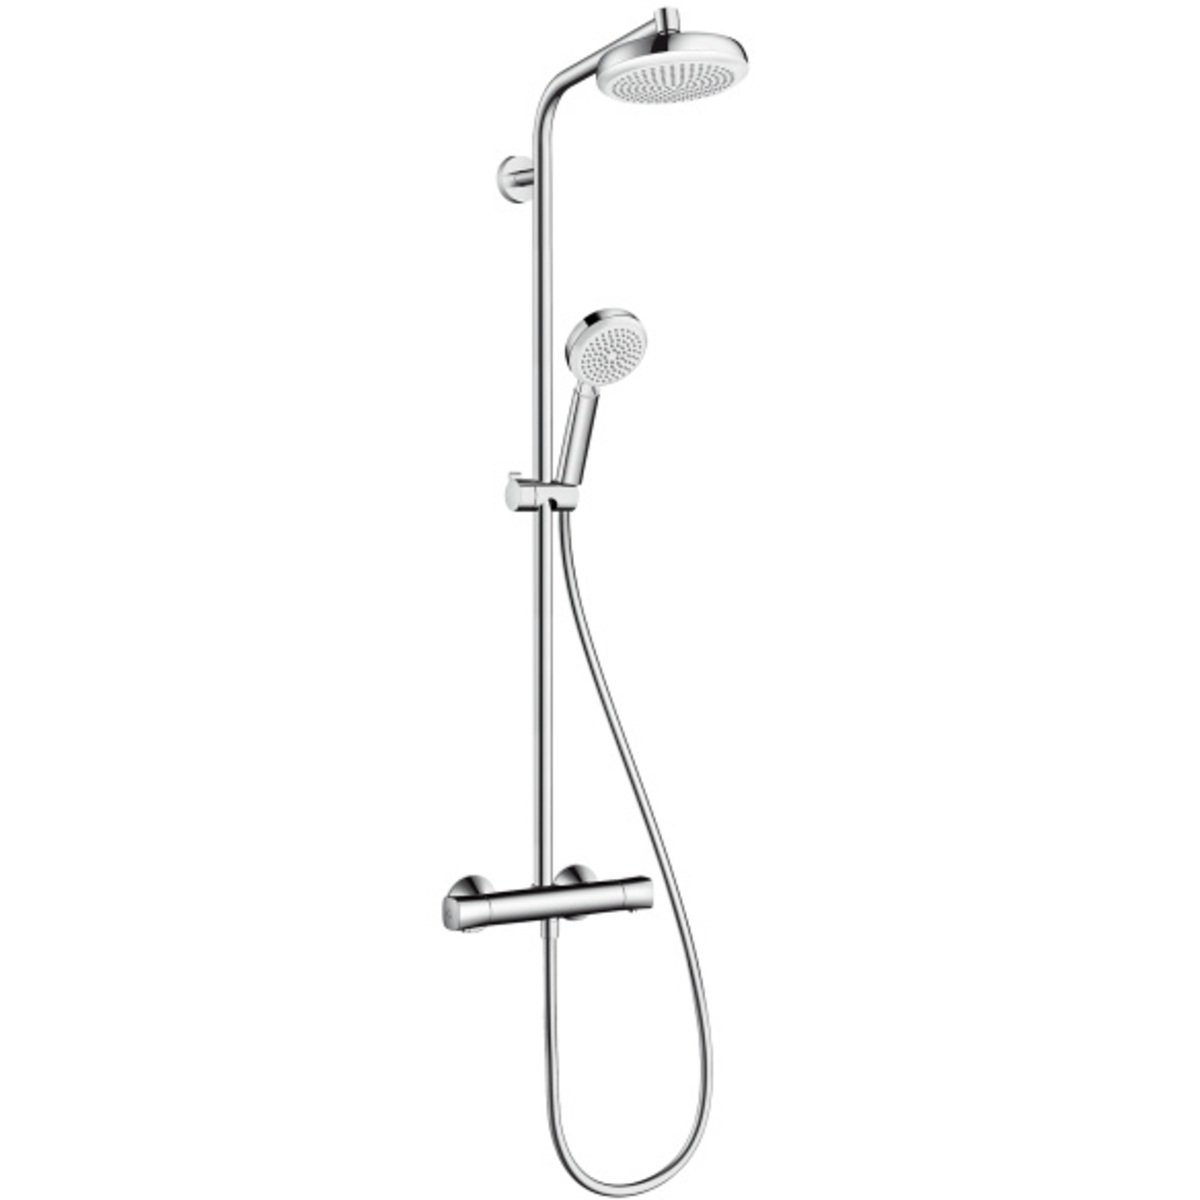 hansgrohe crometta 160 colonne de douche thermostatique blanc chrome 27264400. Black Bedroom Furniture Sets. Home Design Ideas